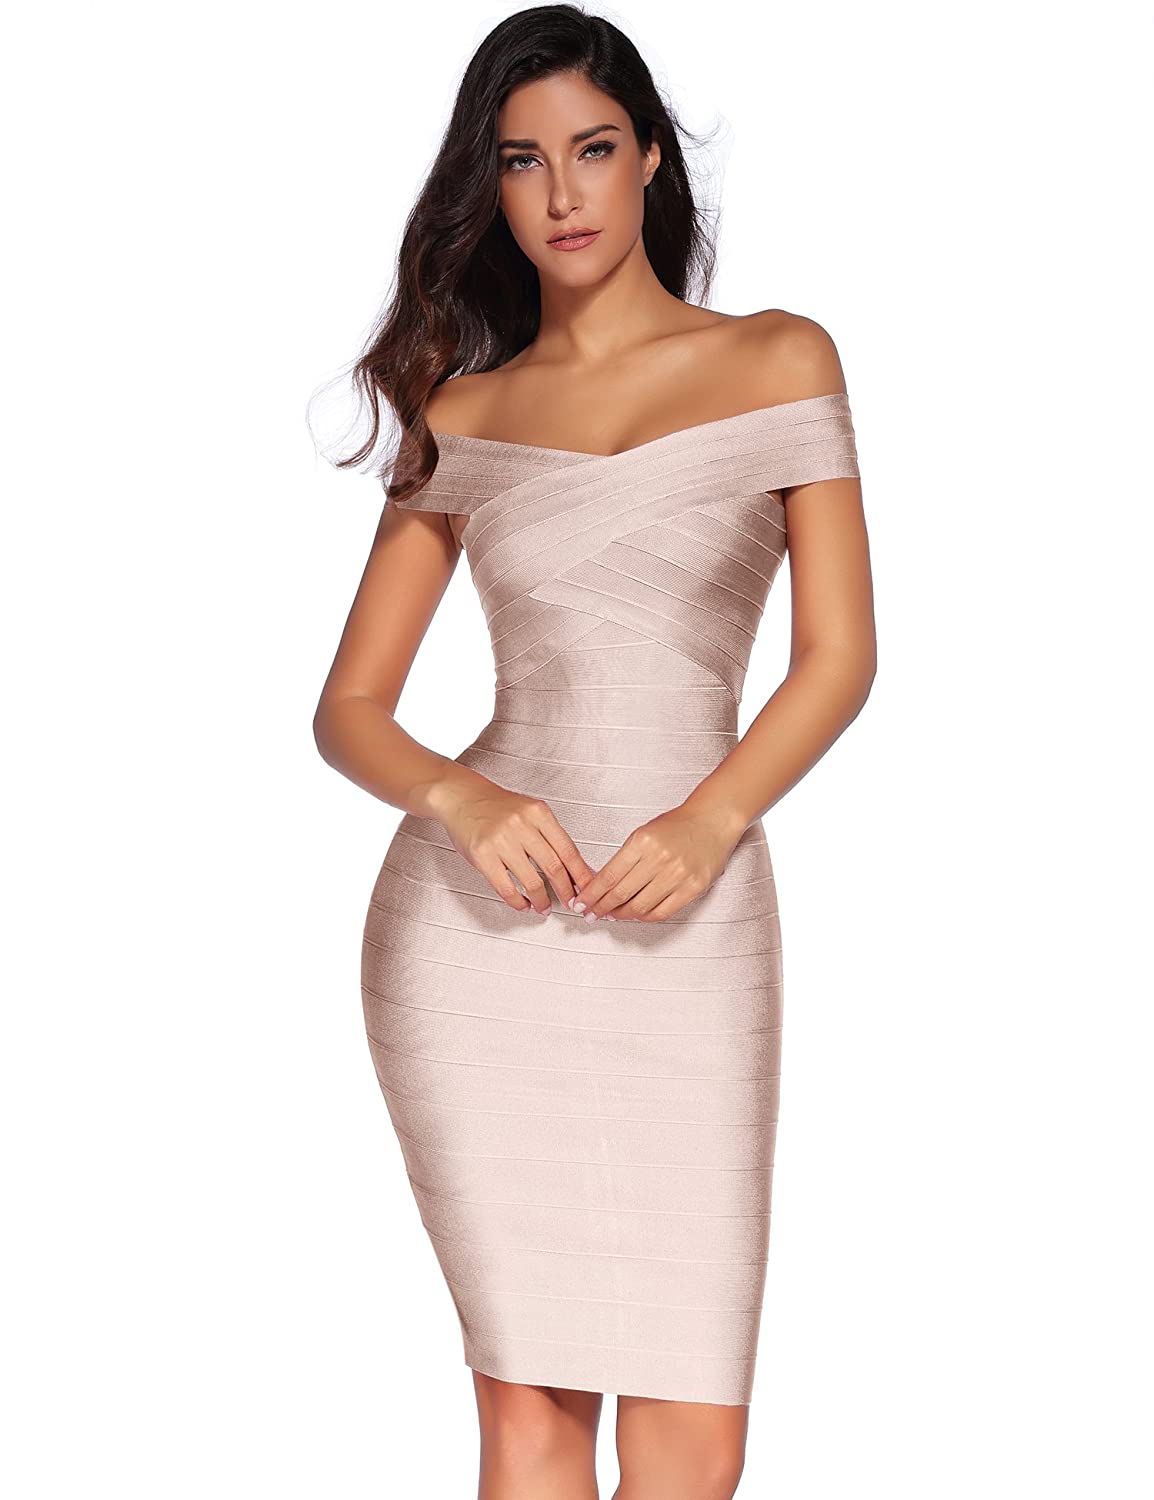 7a06adcdd Amazon.com  Meilun Women s Rayon Strap V-Neck Bandage Bodycon Party Dress   Clothing